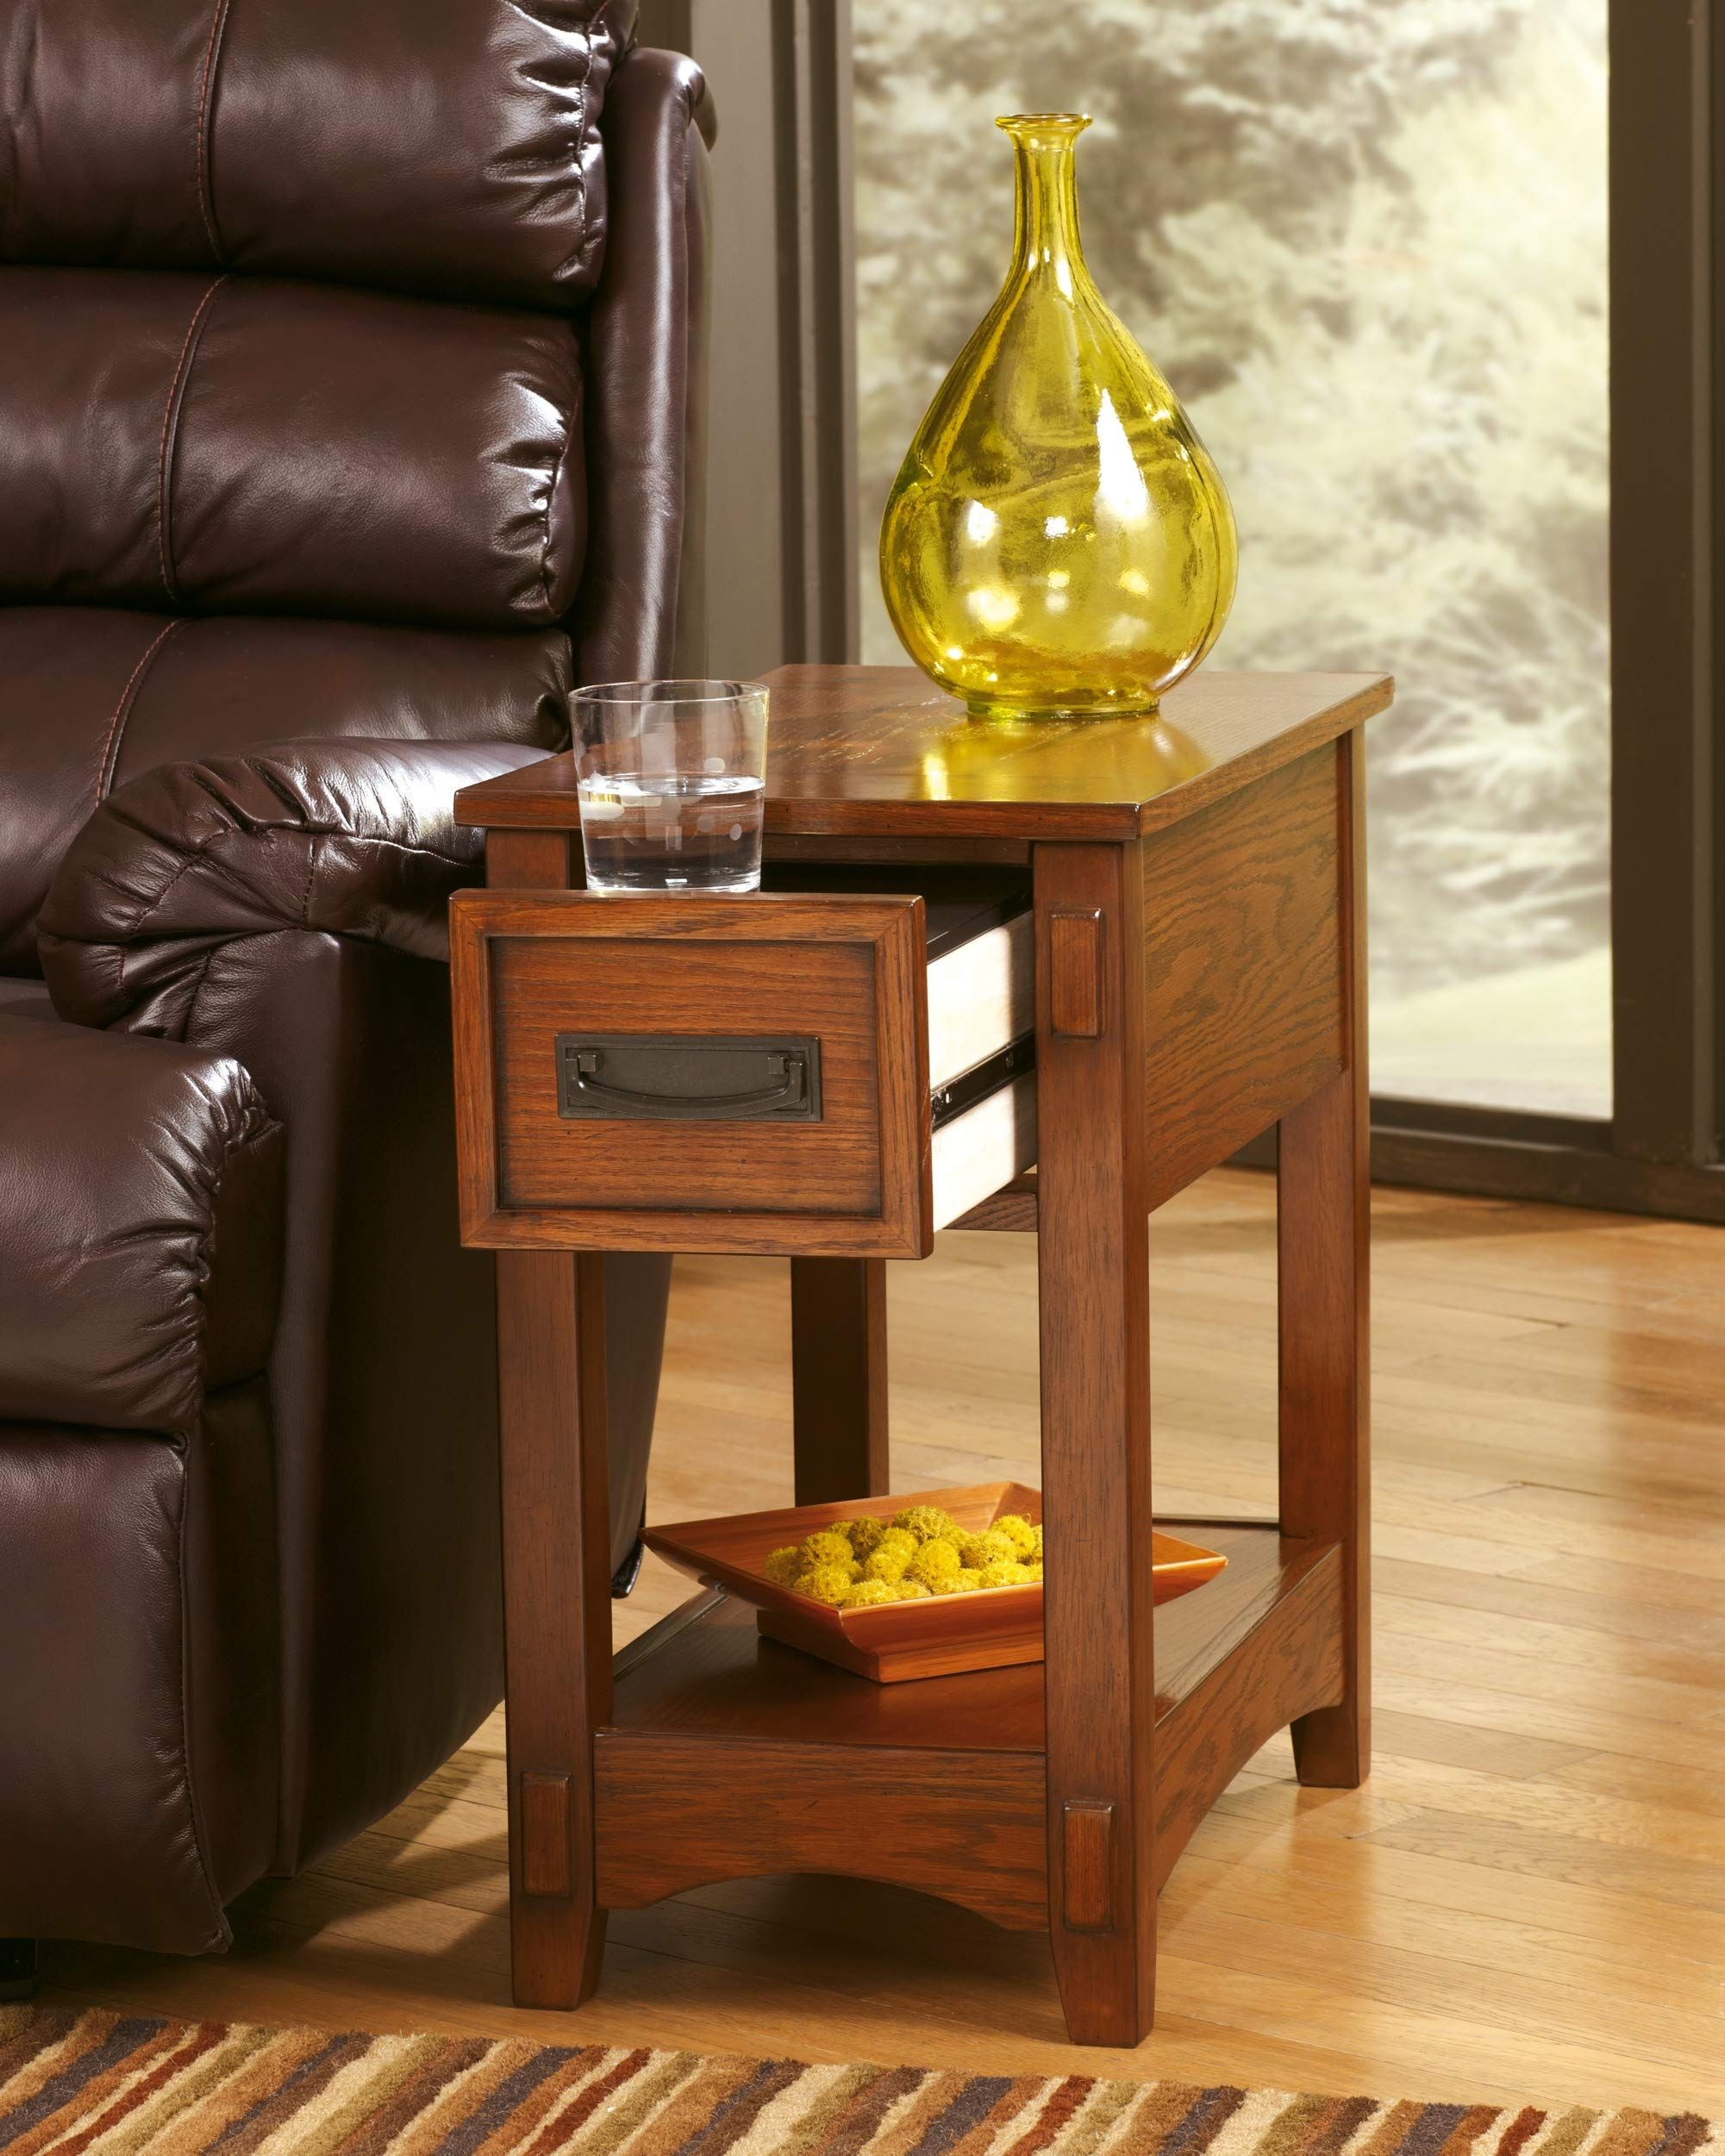 Ashley Furniture Signature Design Breegin Chairside End Table 1 Drawer Contemporary Brown B In 2020 Oak End Tables End Tables With Drawers Furniture Side Tables